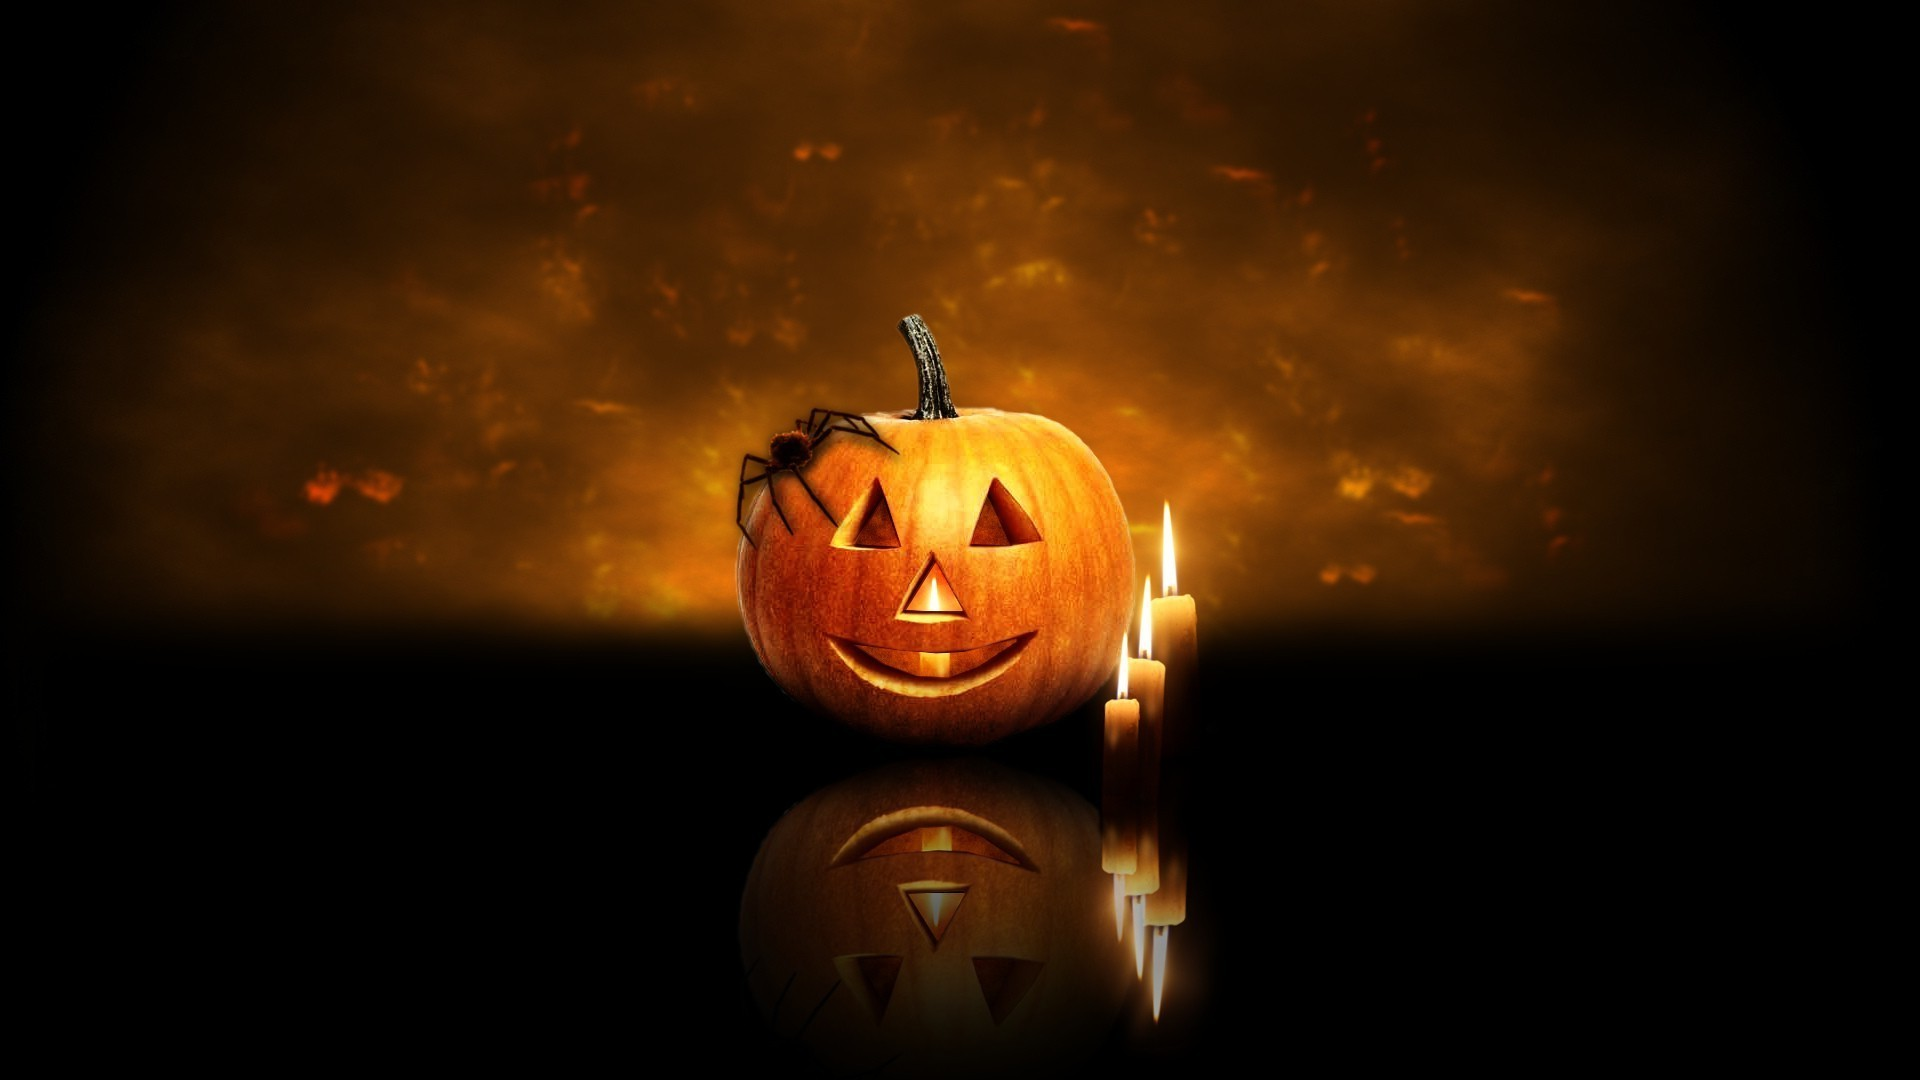 Animated Halloween Wallpapers with Music 63 images 1920x1080